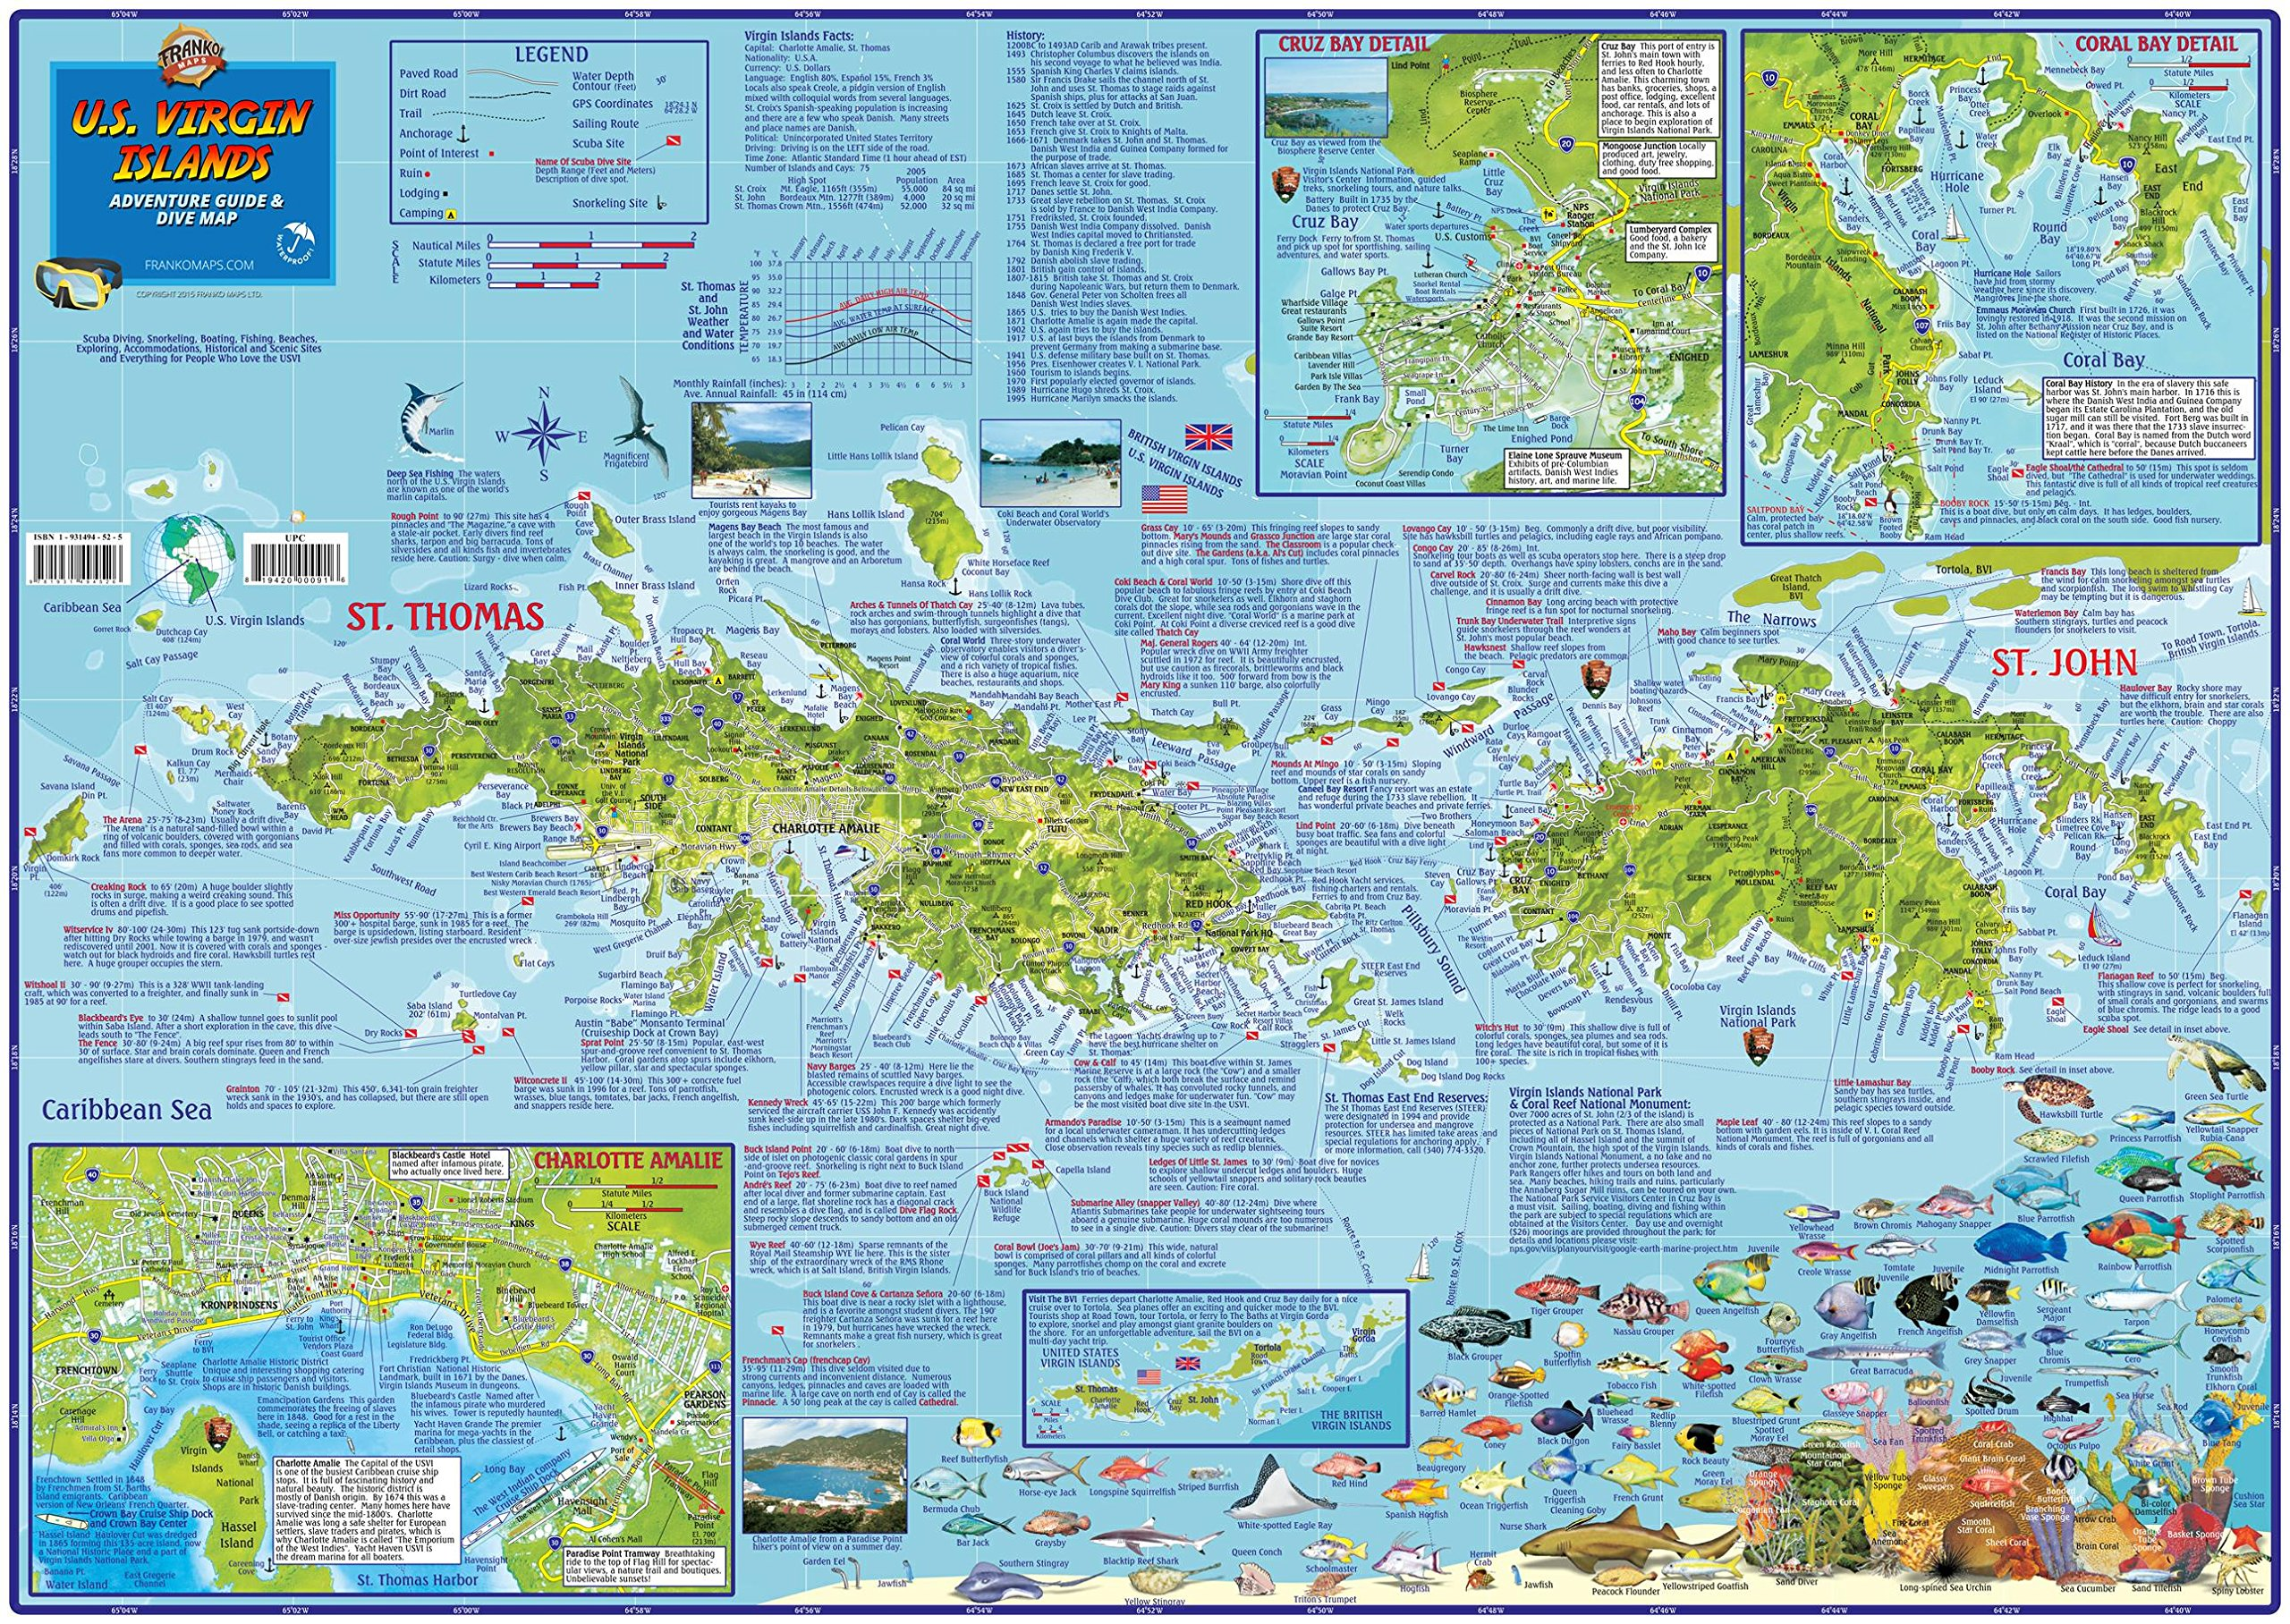 us virgin islands dive adventure guide usvi dive map franko maps waterproof map franko maps ltd 9781931494526 amazoncom books